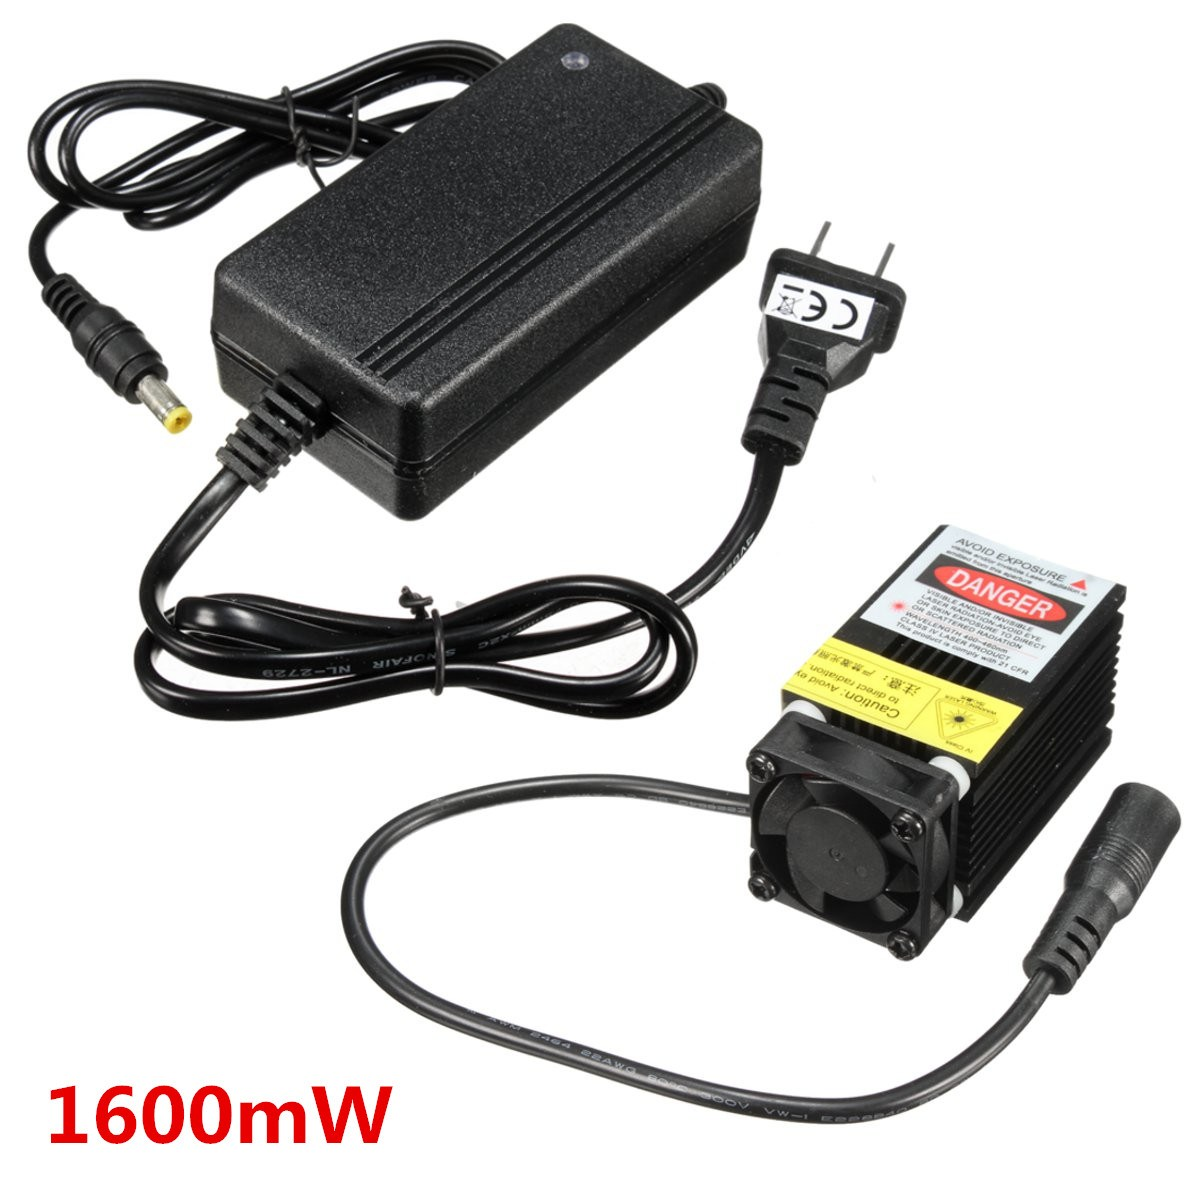 1600MW Laser Module Engraving Head 12V 1.6W For DIY USB CNC Cutting Printing Machine + Power Supply laser module industrial laser head red laser spot heat dissipation can work for a long time